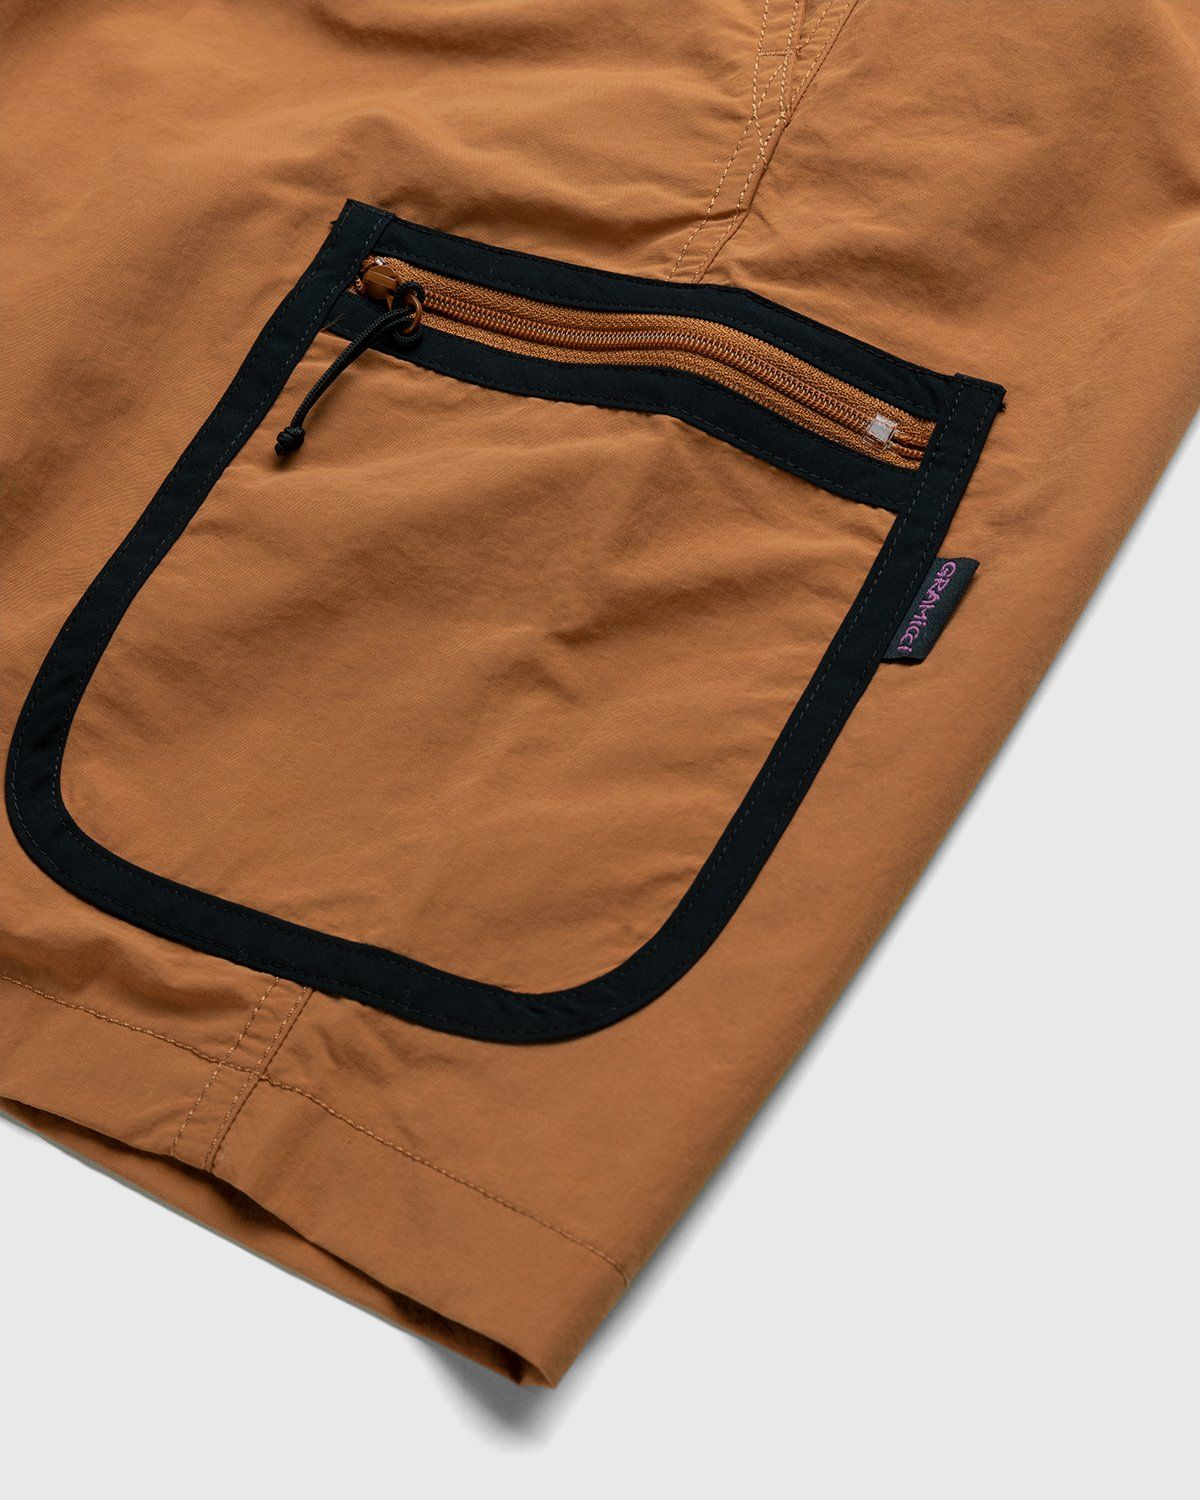 Gramicci for Highsnobiety – Shorts Rust - Image 4